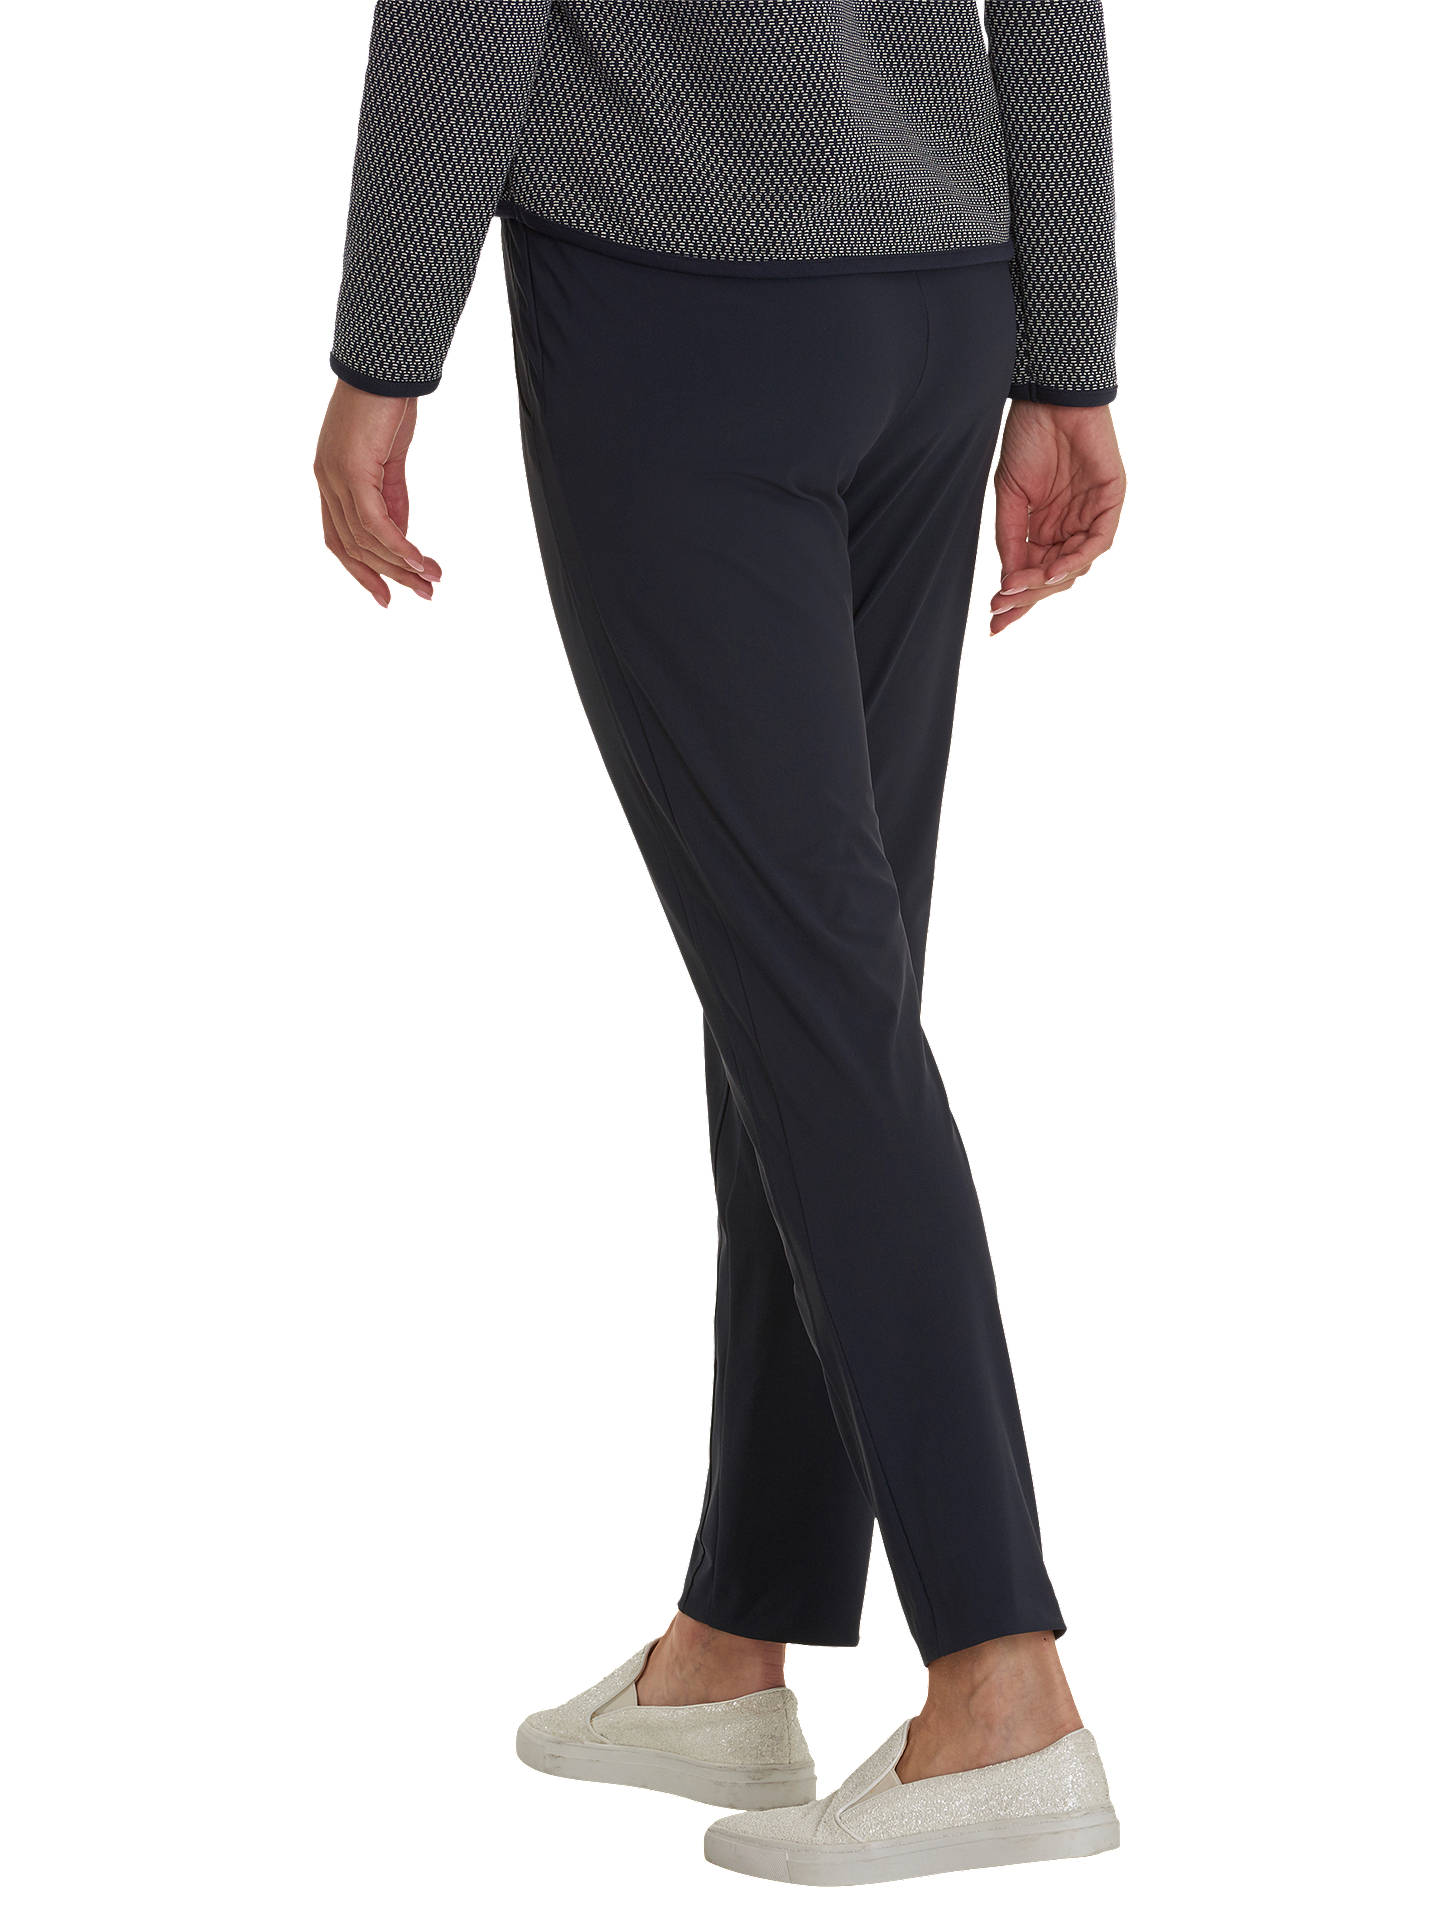 BuyBetty Barclay Sporty Pull On Trousers, Dark Sky, 8 Online at johnlewis.com